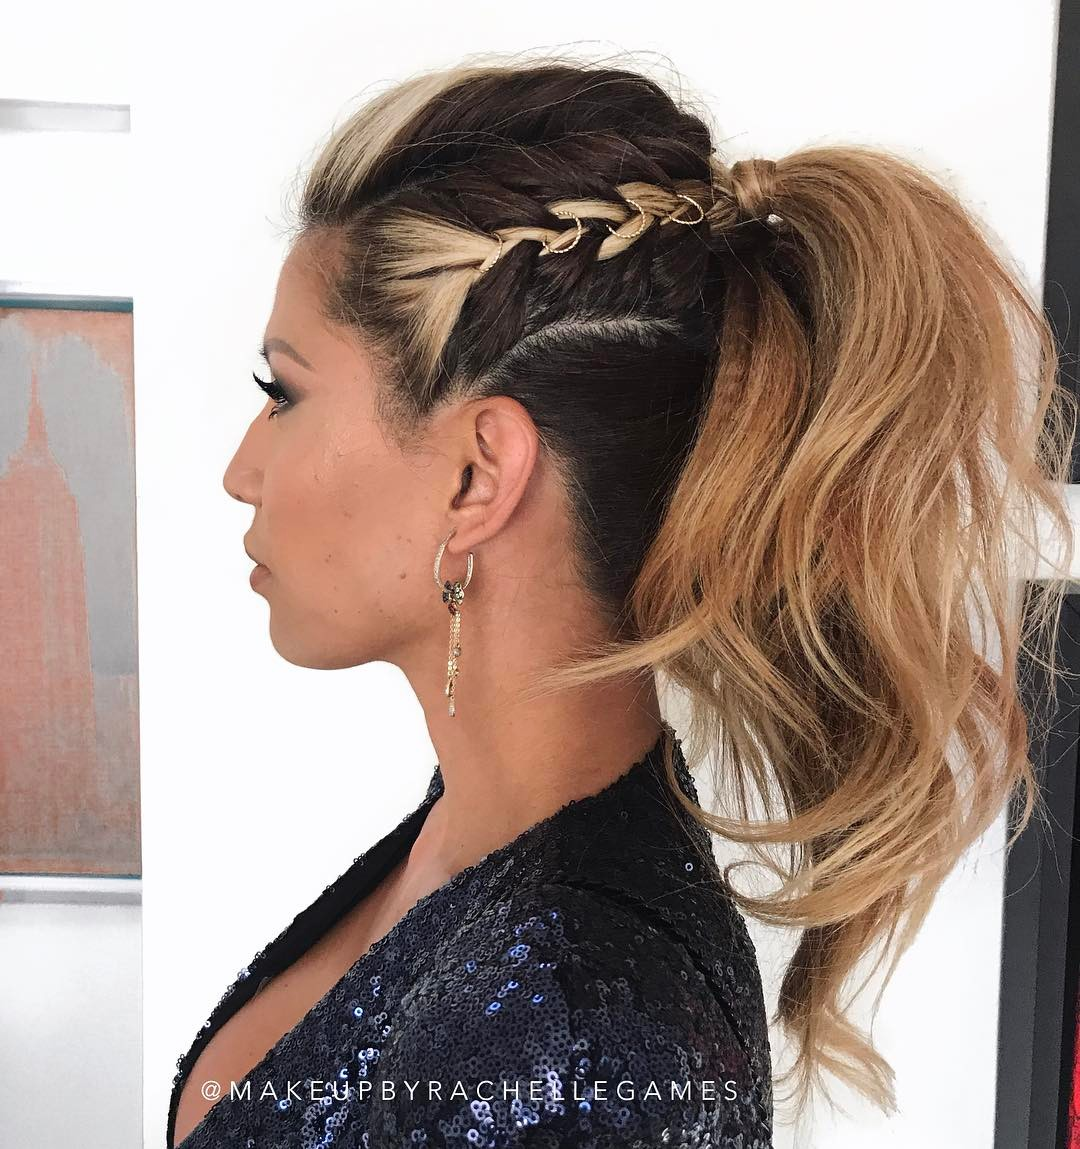 10 Ponytail Hairstyles - Pretty, Posh, Playful